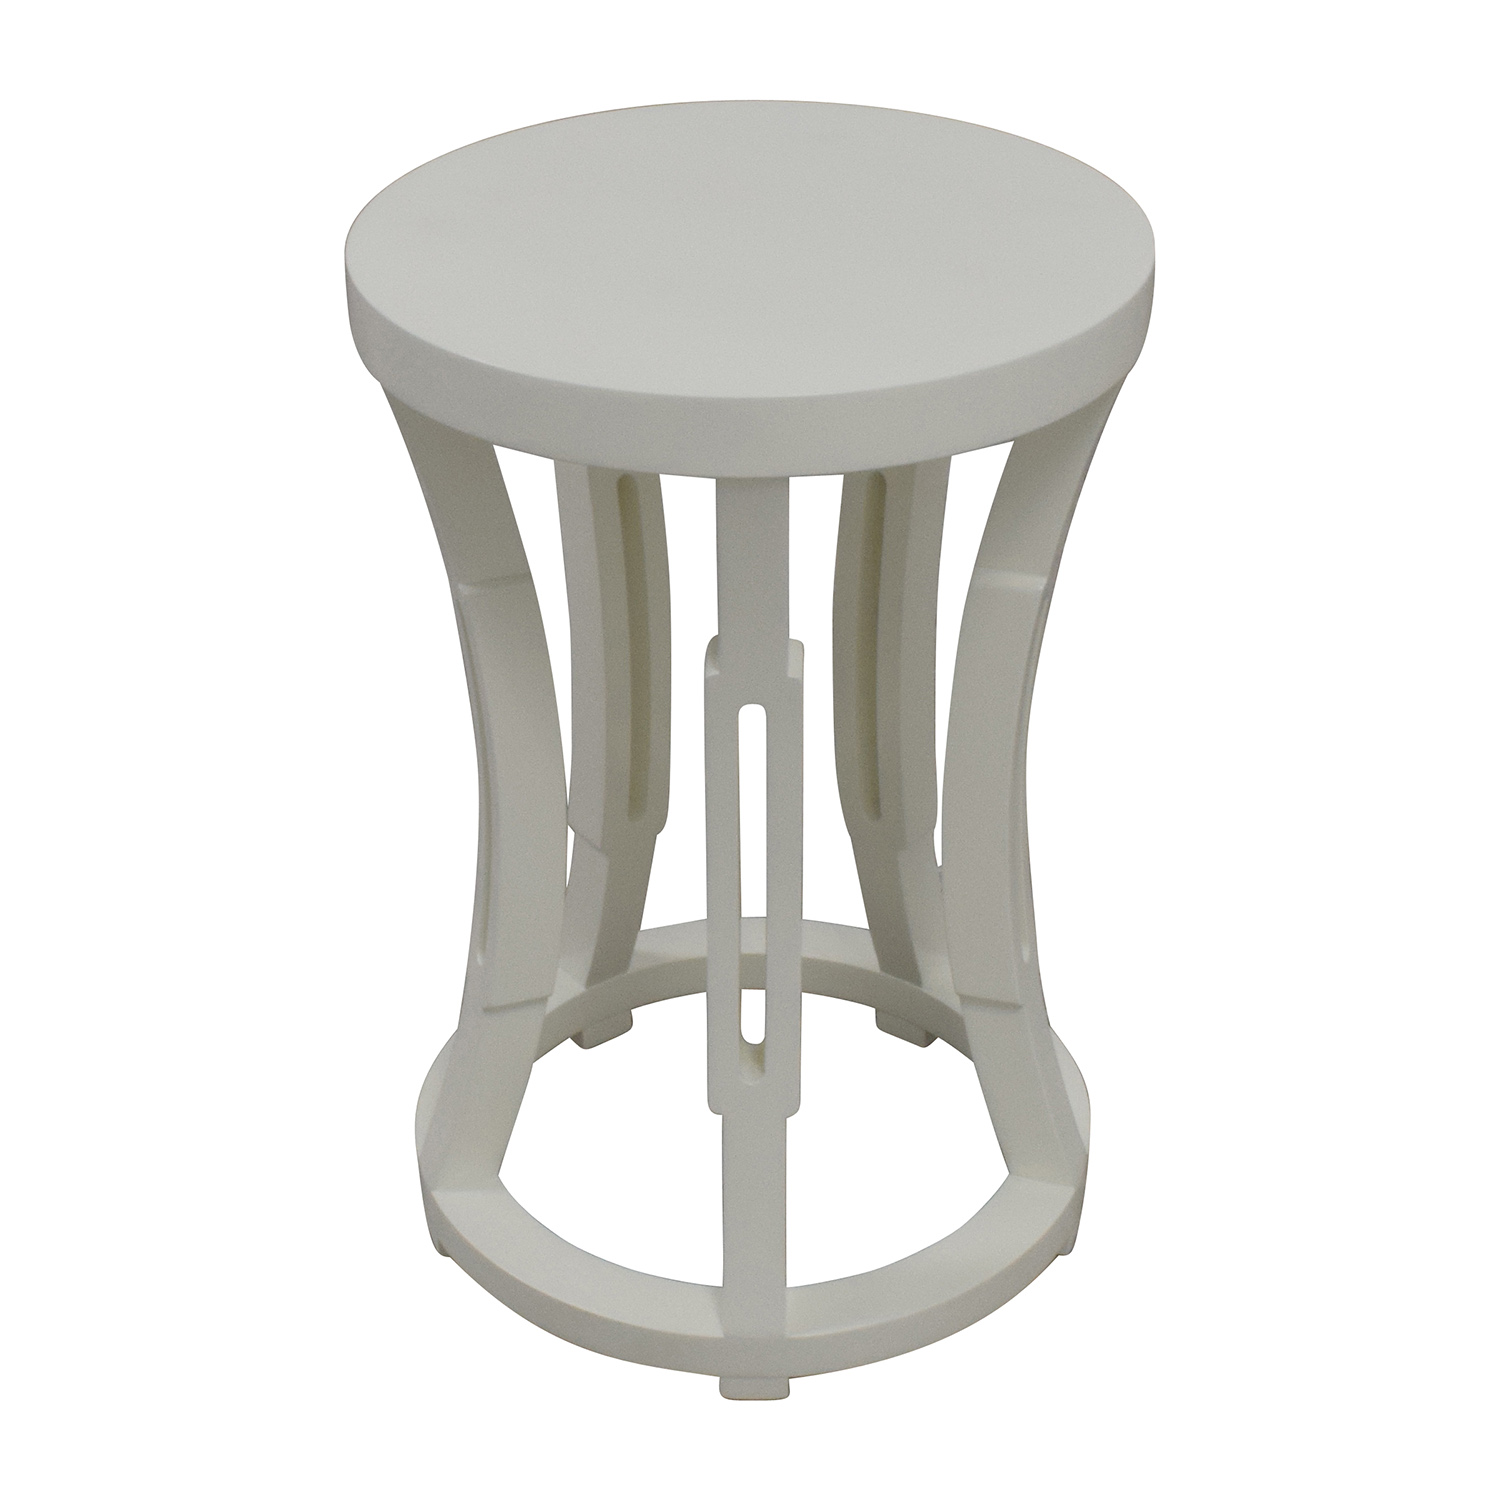 Bungalow 5 Bungalow 5 Hour Glass Stool Side Table or Stool dimensions